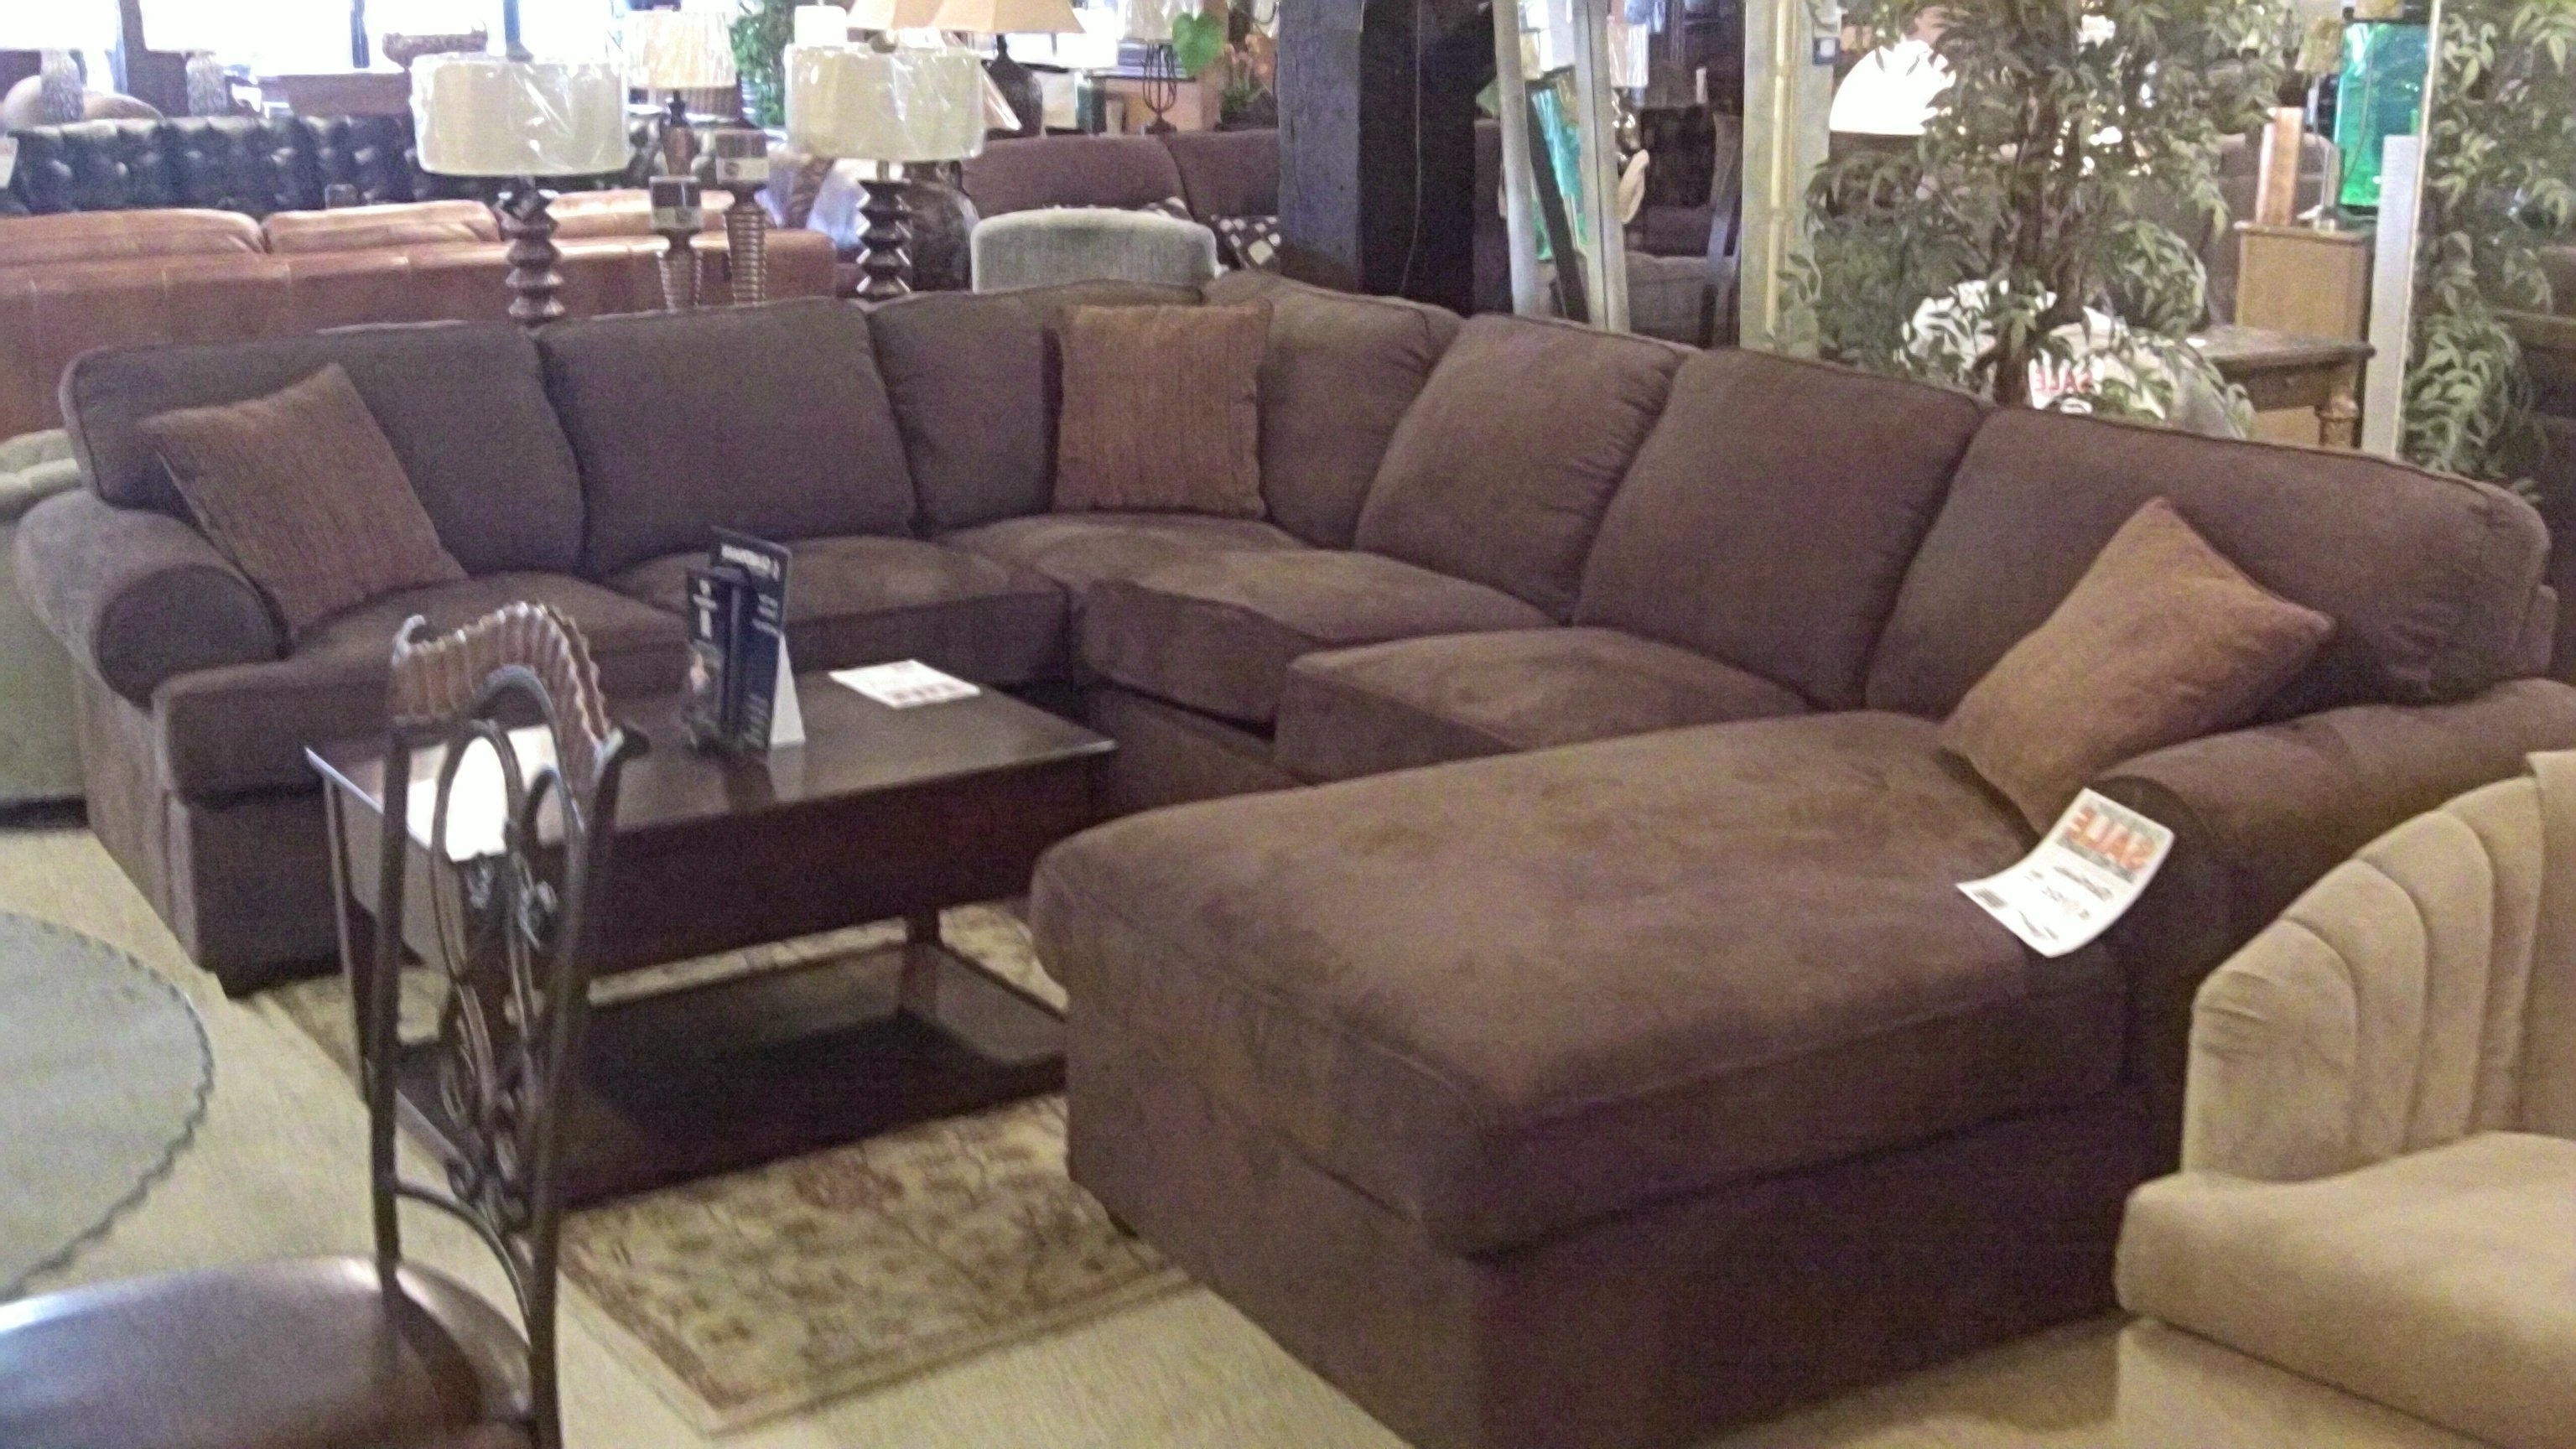 Most Recent Magnificent Large Sectional Sofas — The Kienandsweet Furnitures Inside Oversized Sectionals With Chaise (View 12 of 15)